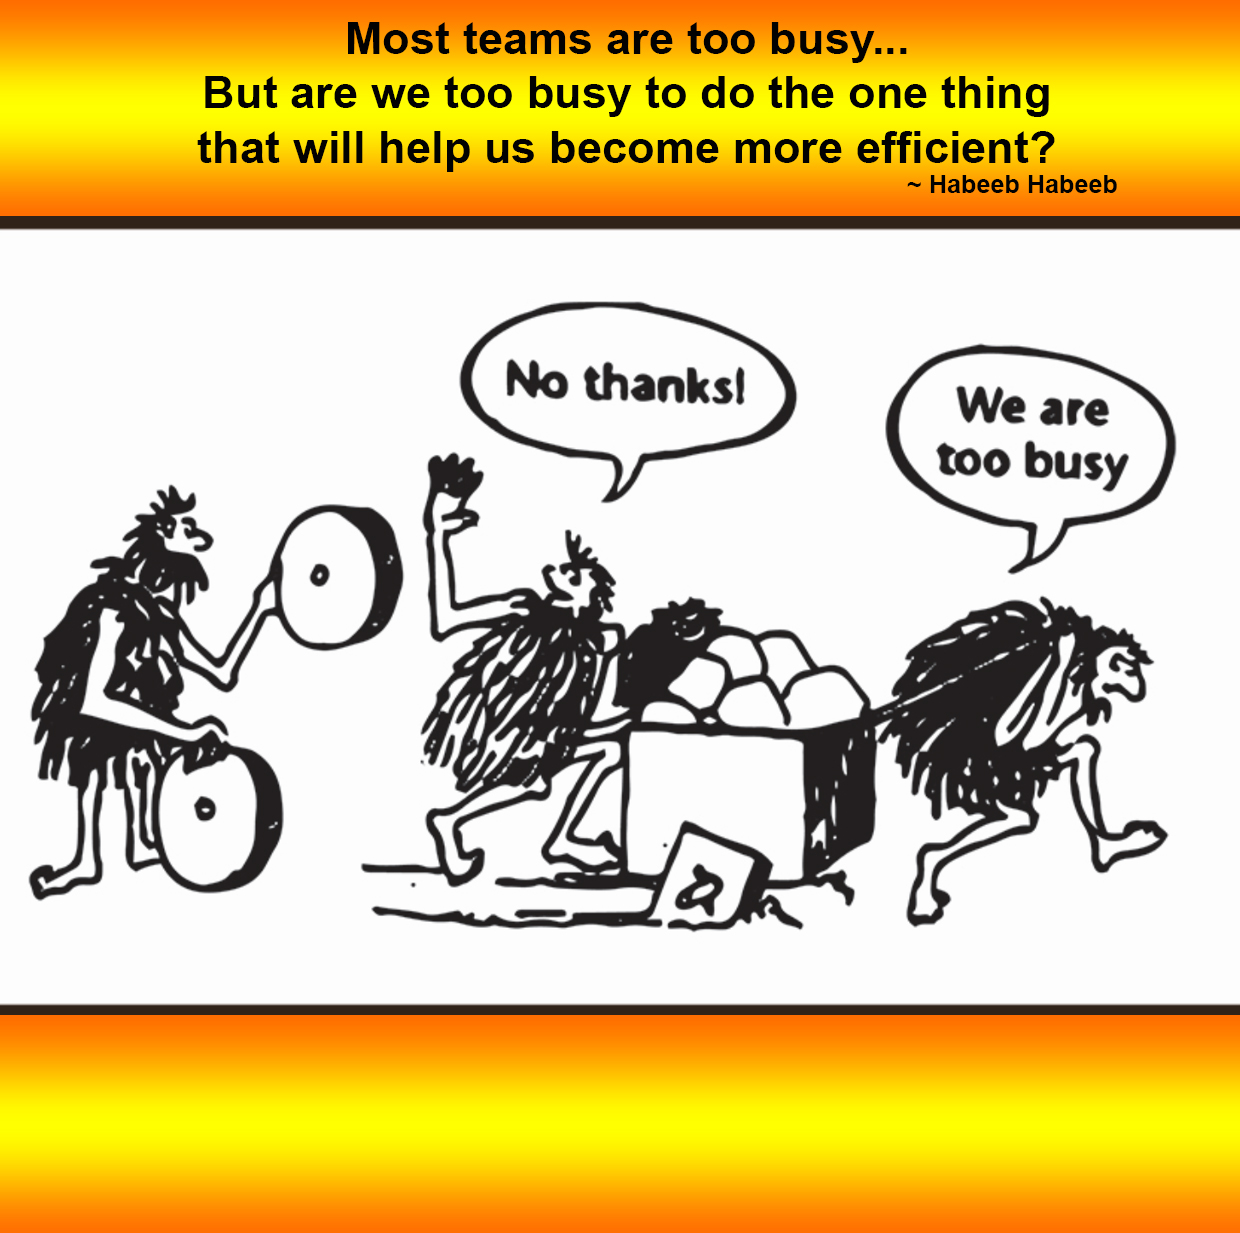 We are too busy-1.jpg